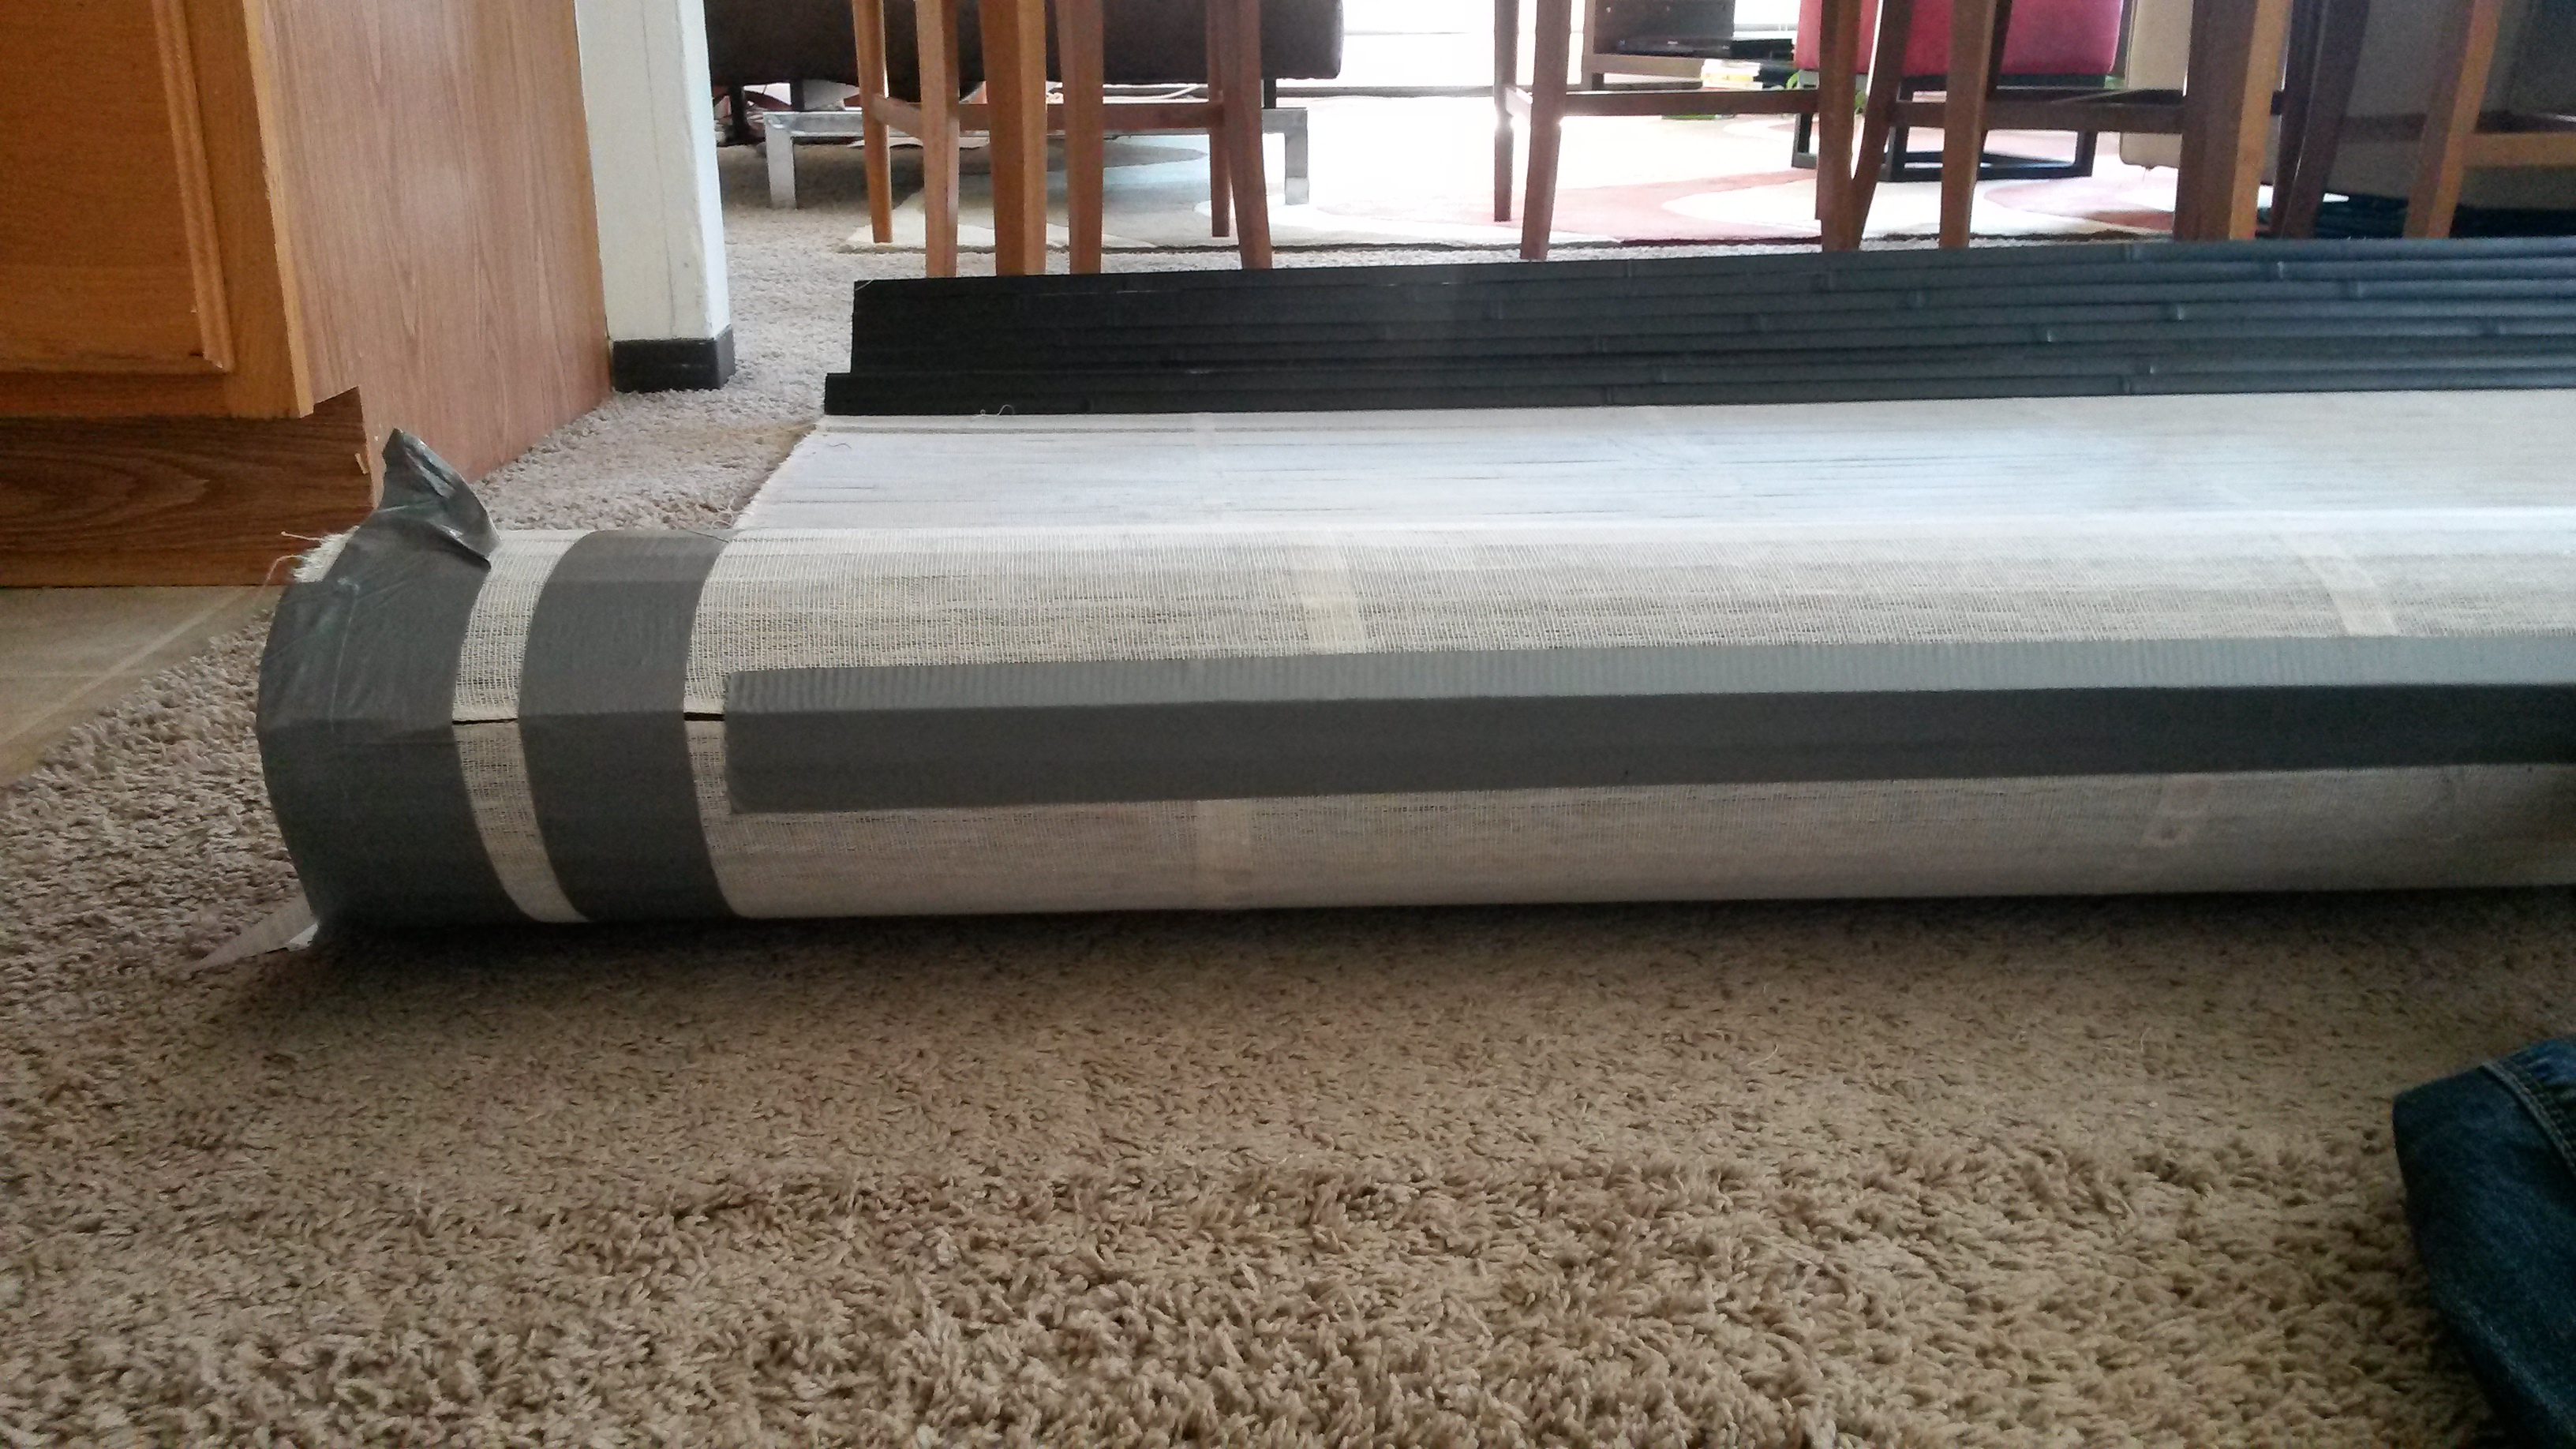 Best Flooring Over Carpet Part 2 SkywayMom